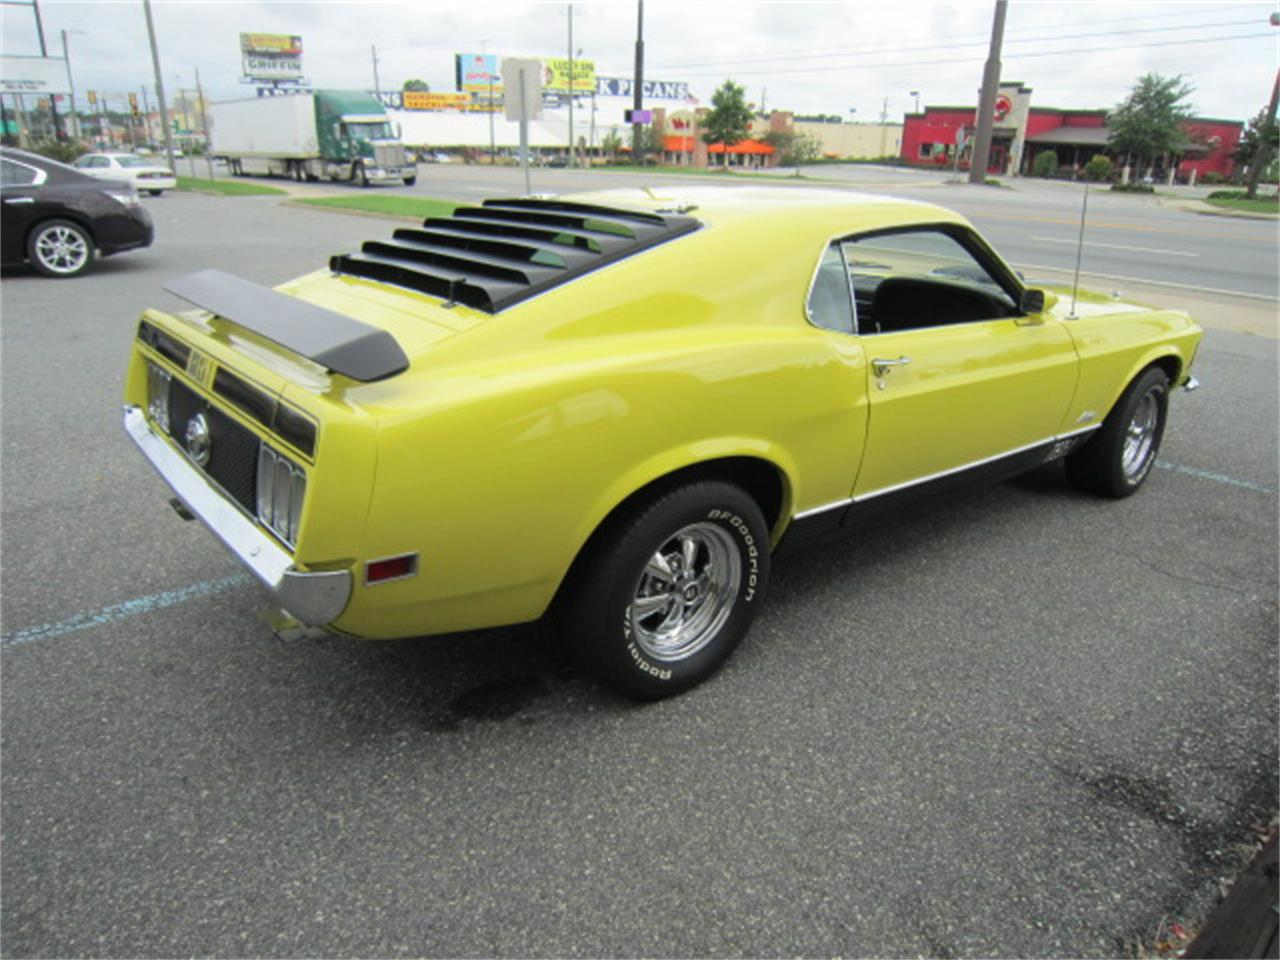 Large Picture of '70 Mustang Mach 1 located in Tifton Georgia - $47,900.00 - MR6C